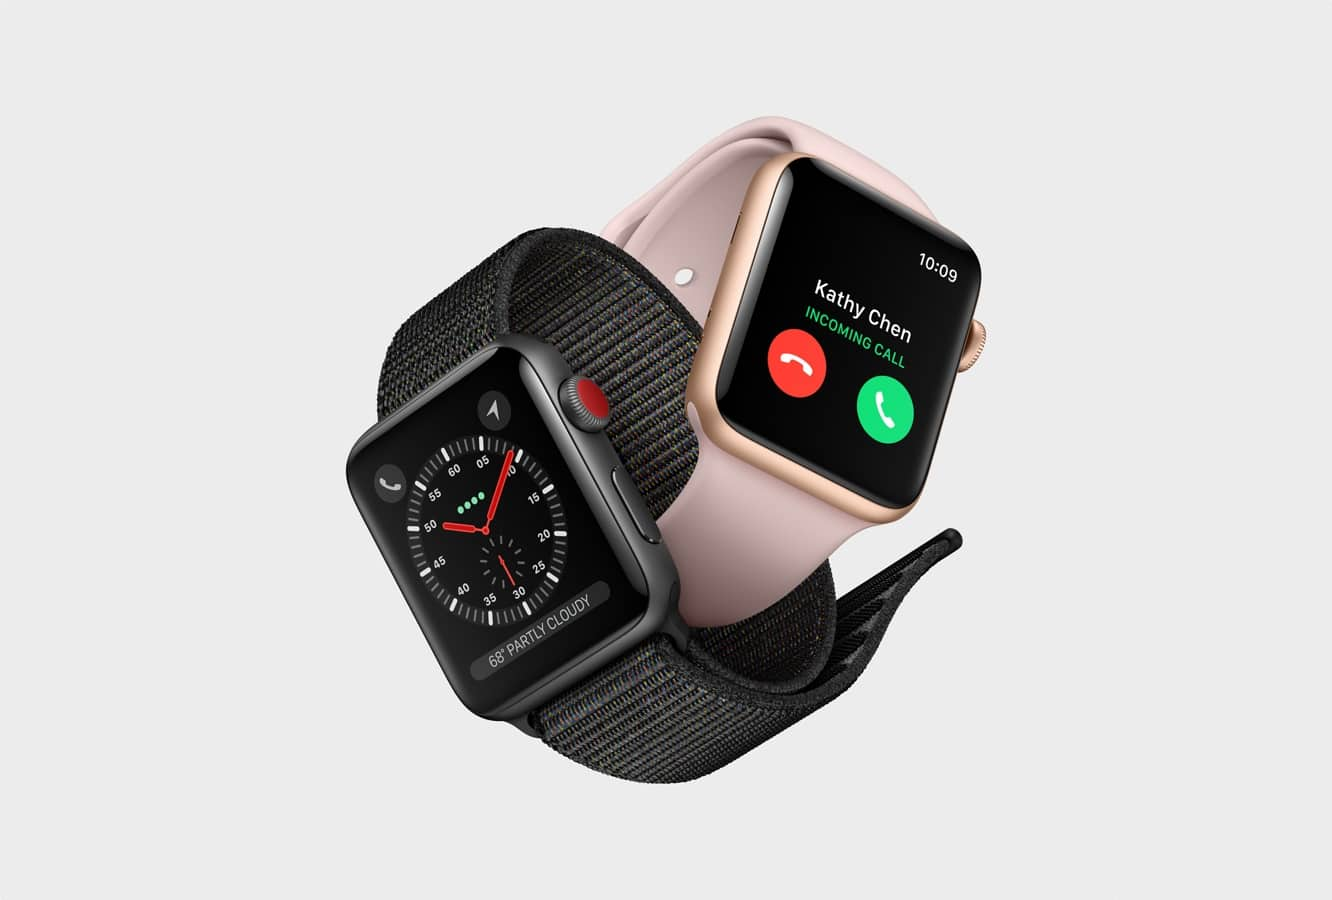 U.S. Apple Watch Series 3 Cellular models will only work on U.S. carriers